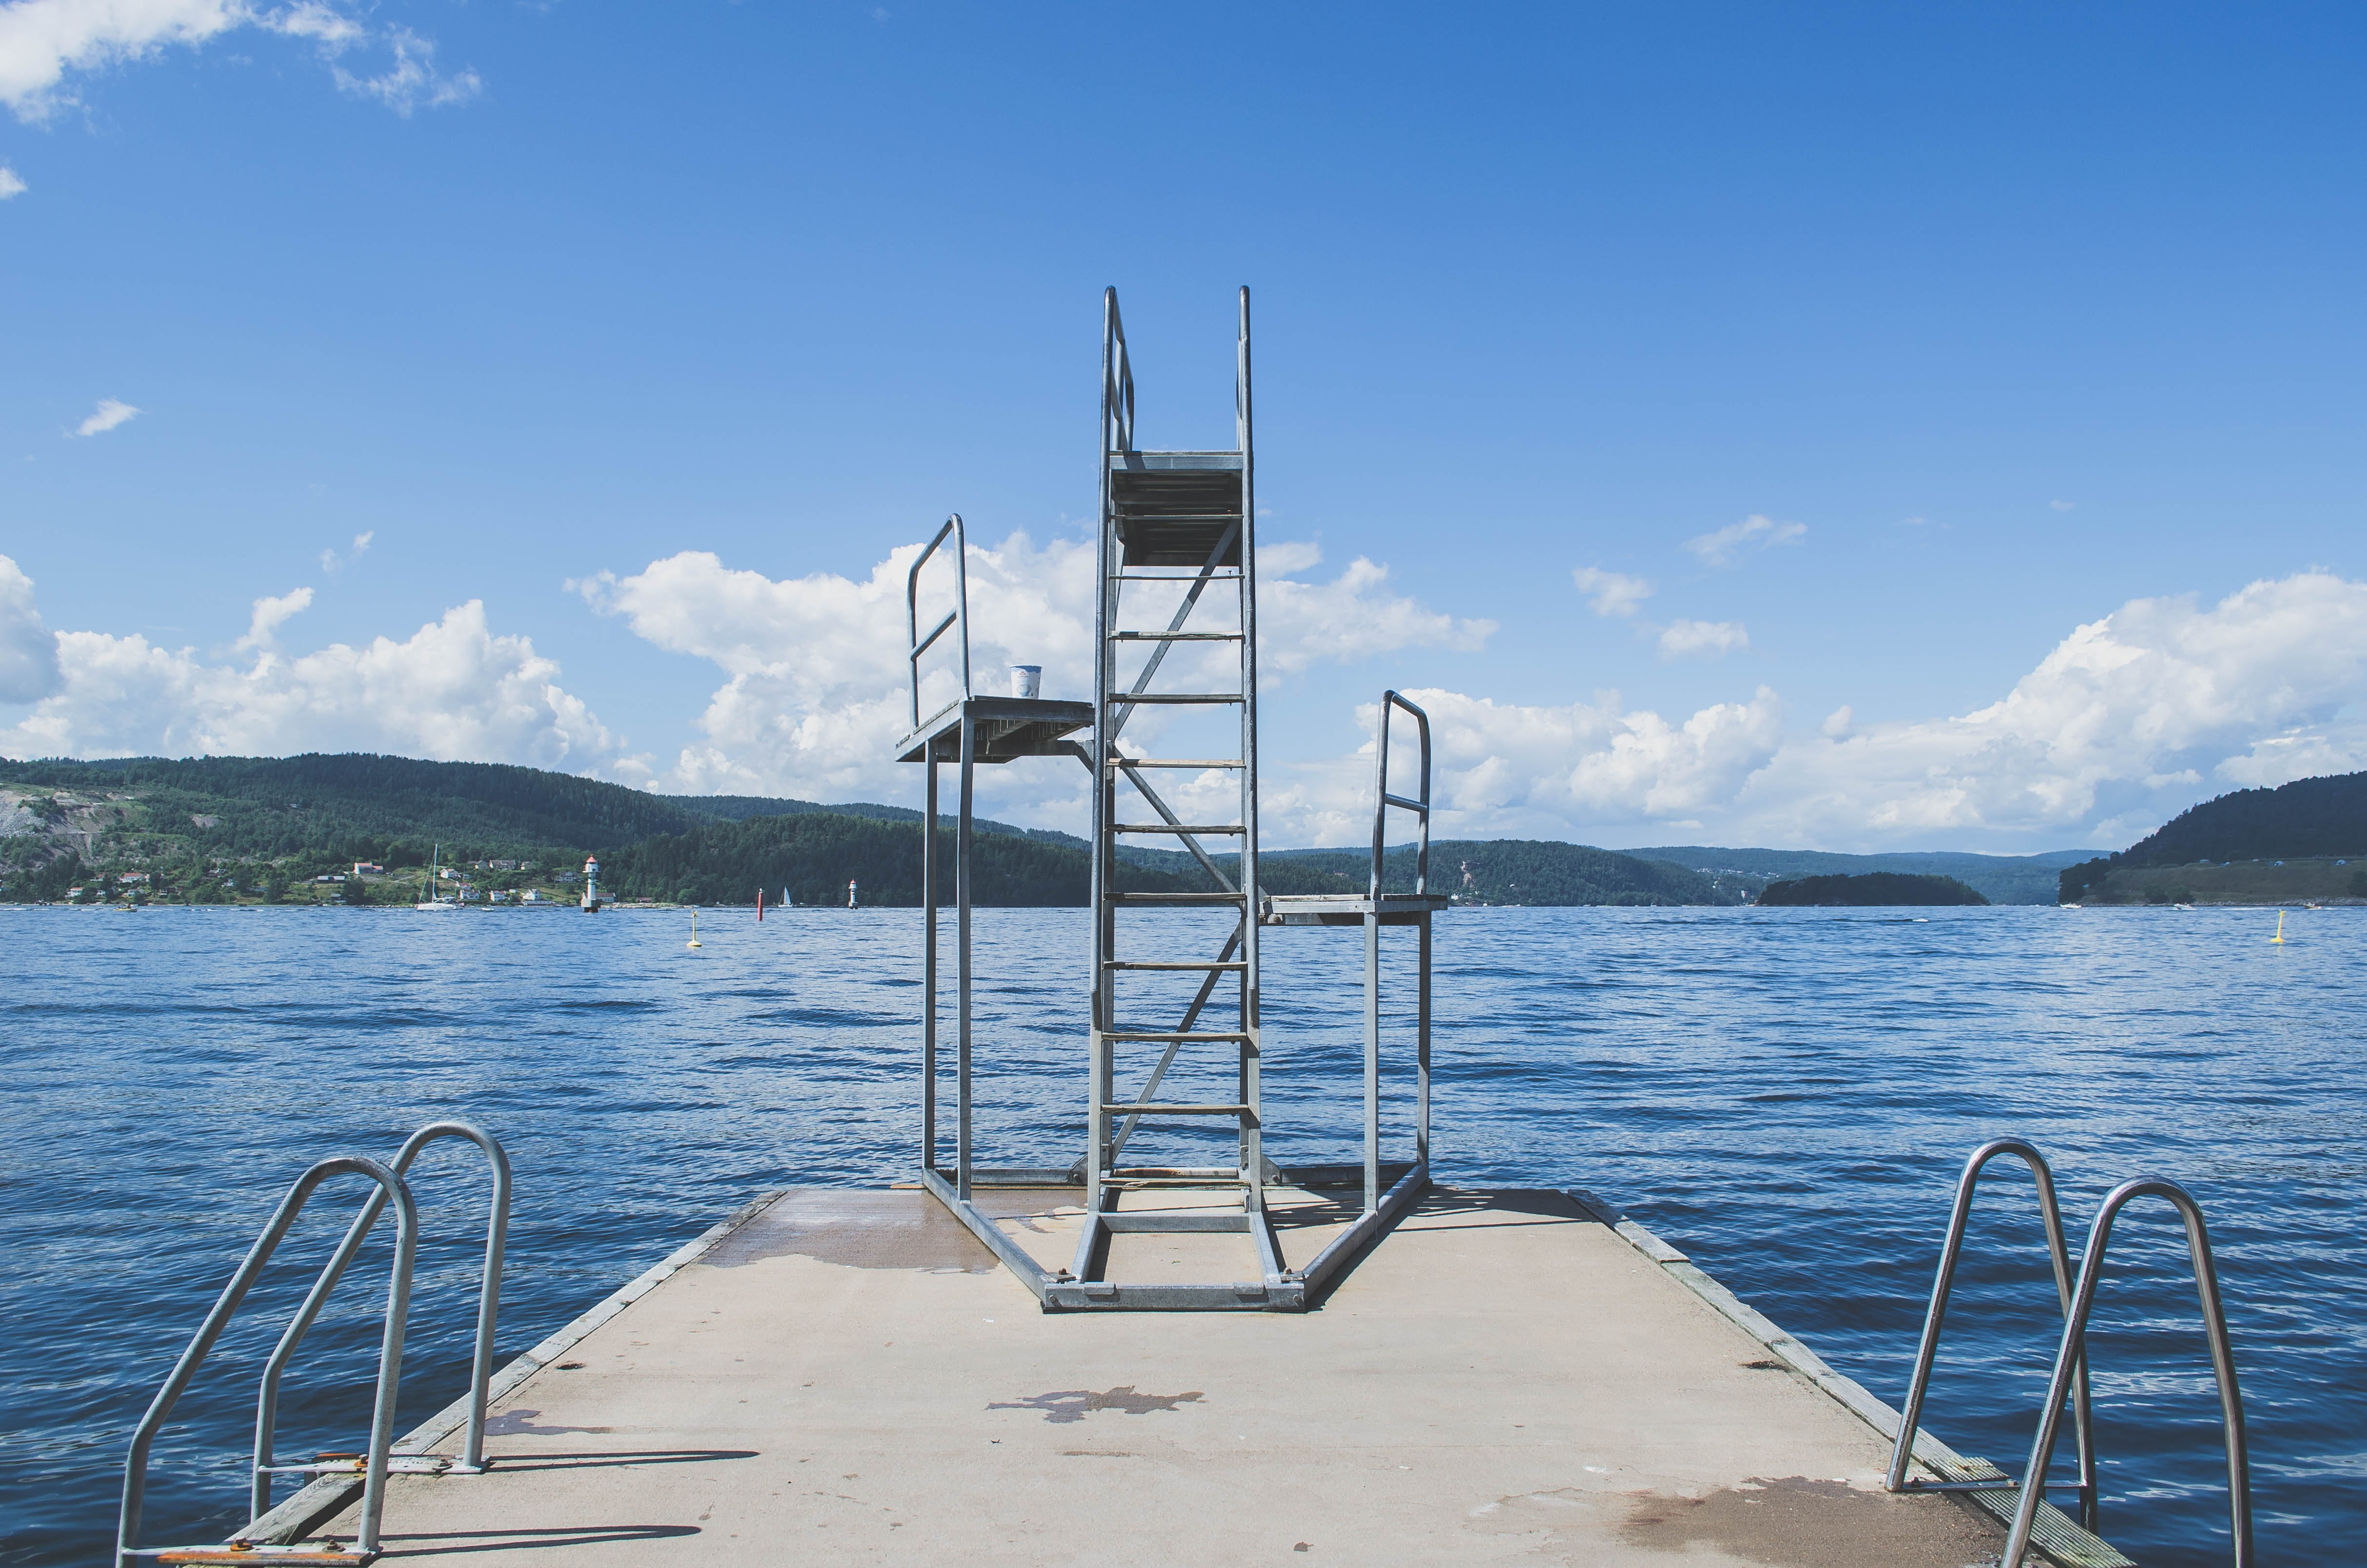 A pier with ladders a diving board on a tranquil lake